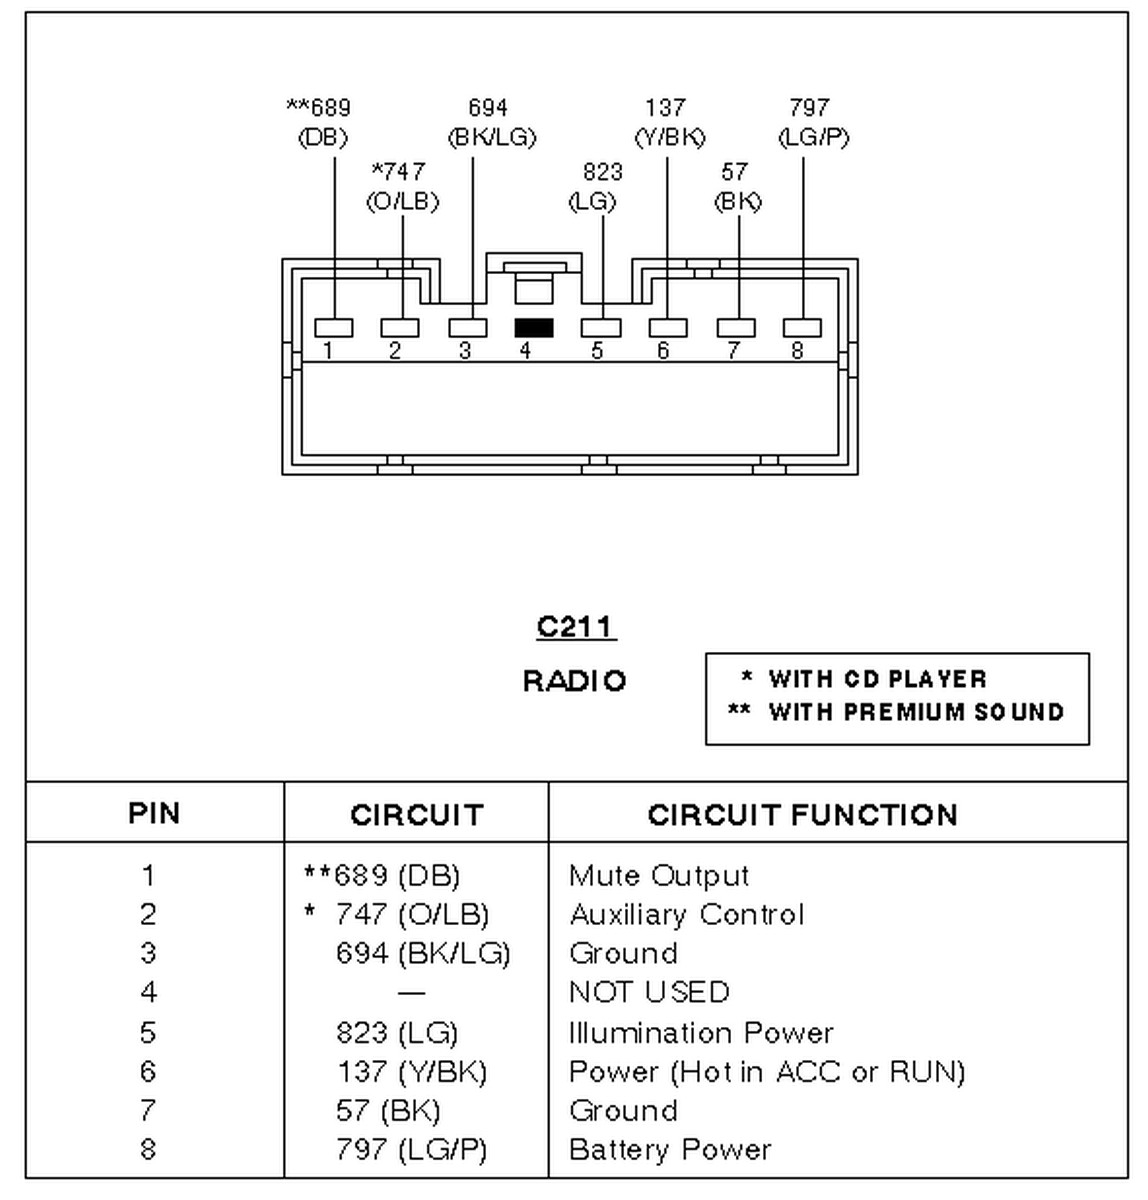 07 ford ranger radio wiring diagram suzuki cultus efi 1996 explorer jbl collection